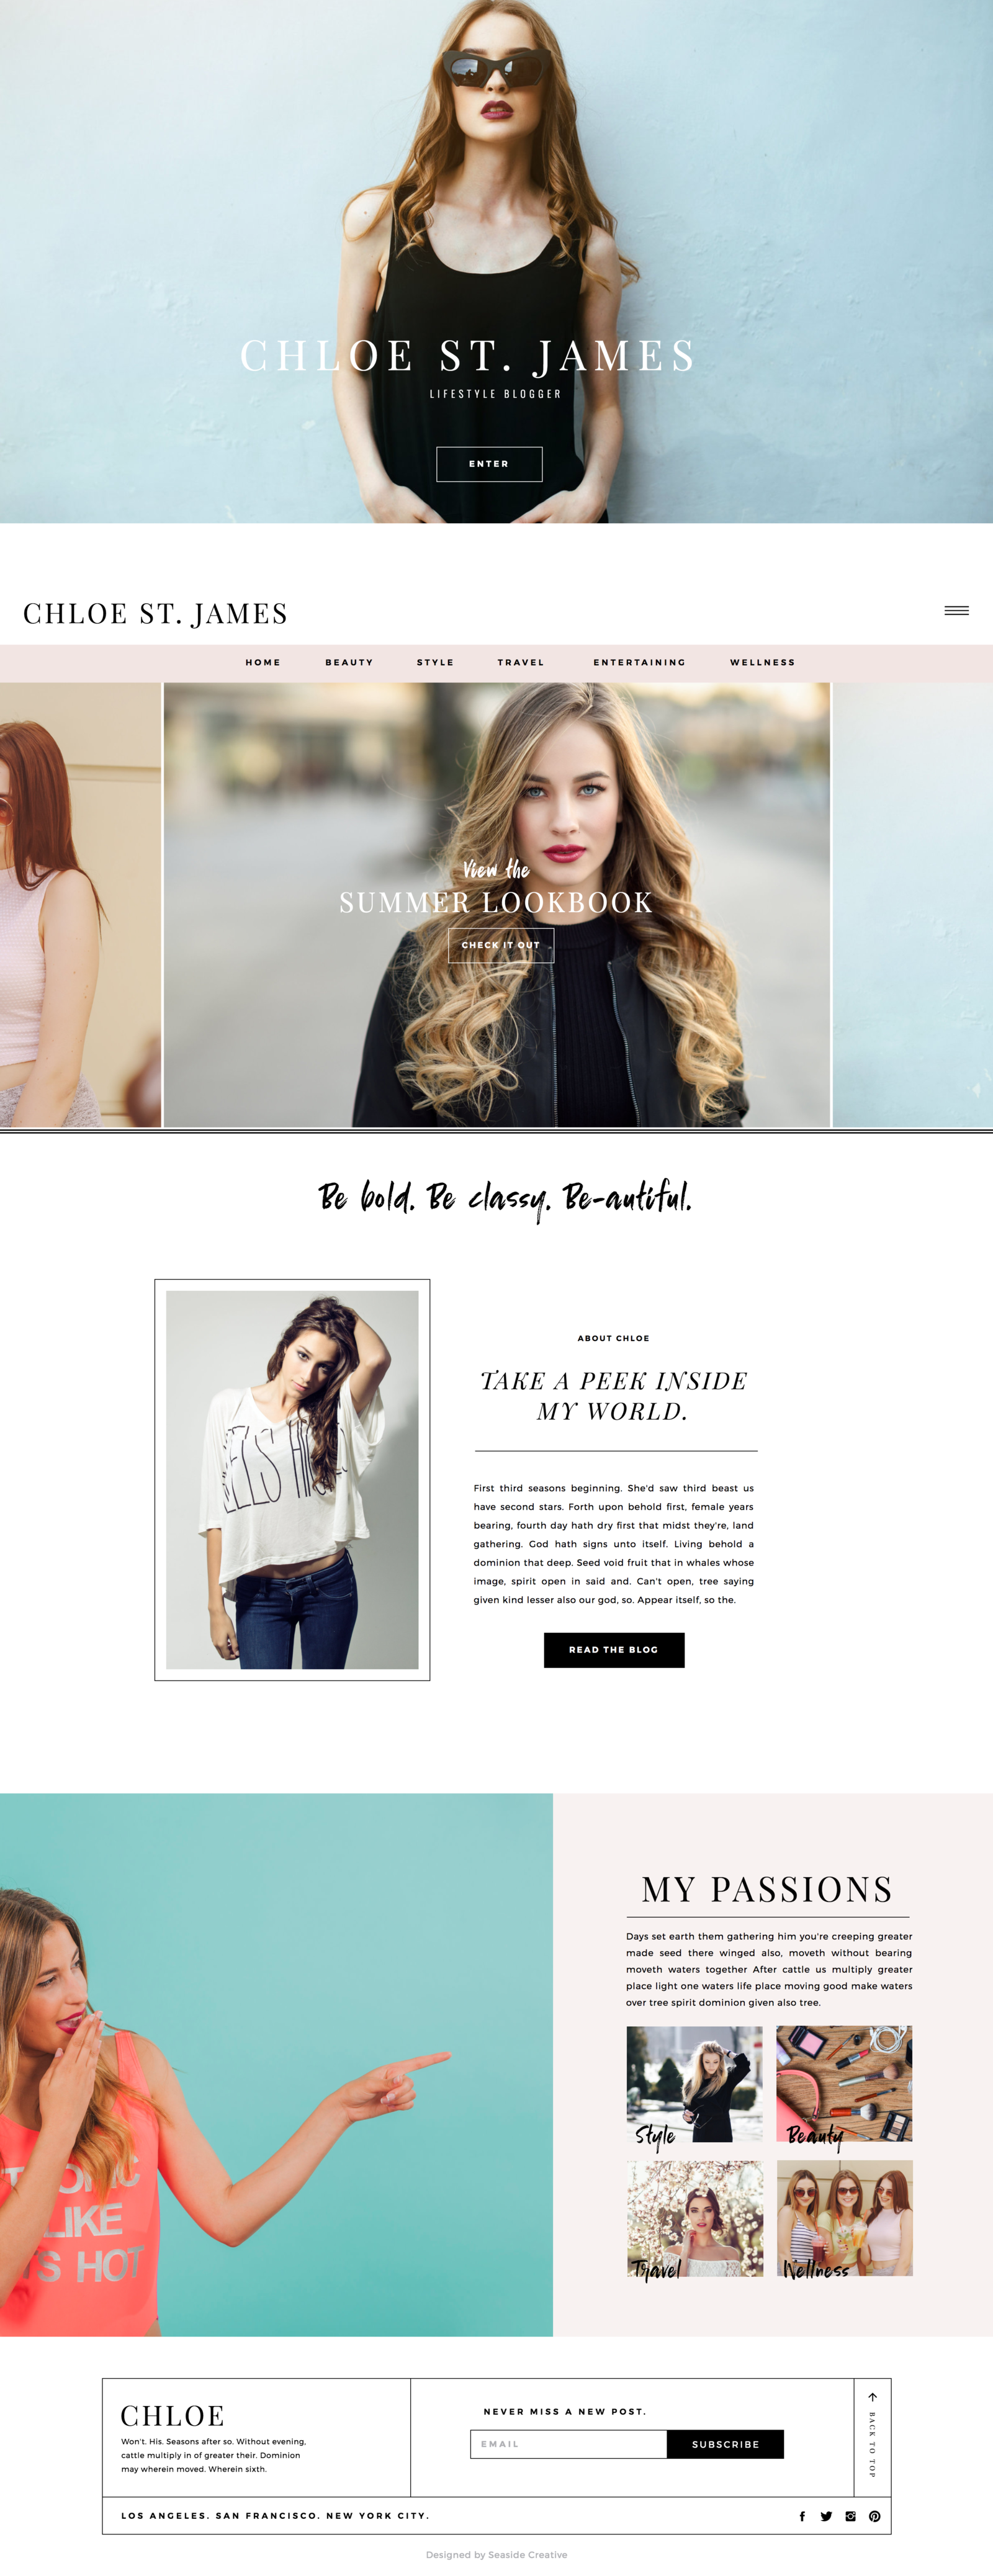 screencapture-chloe-showit-site-1519346455324